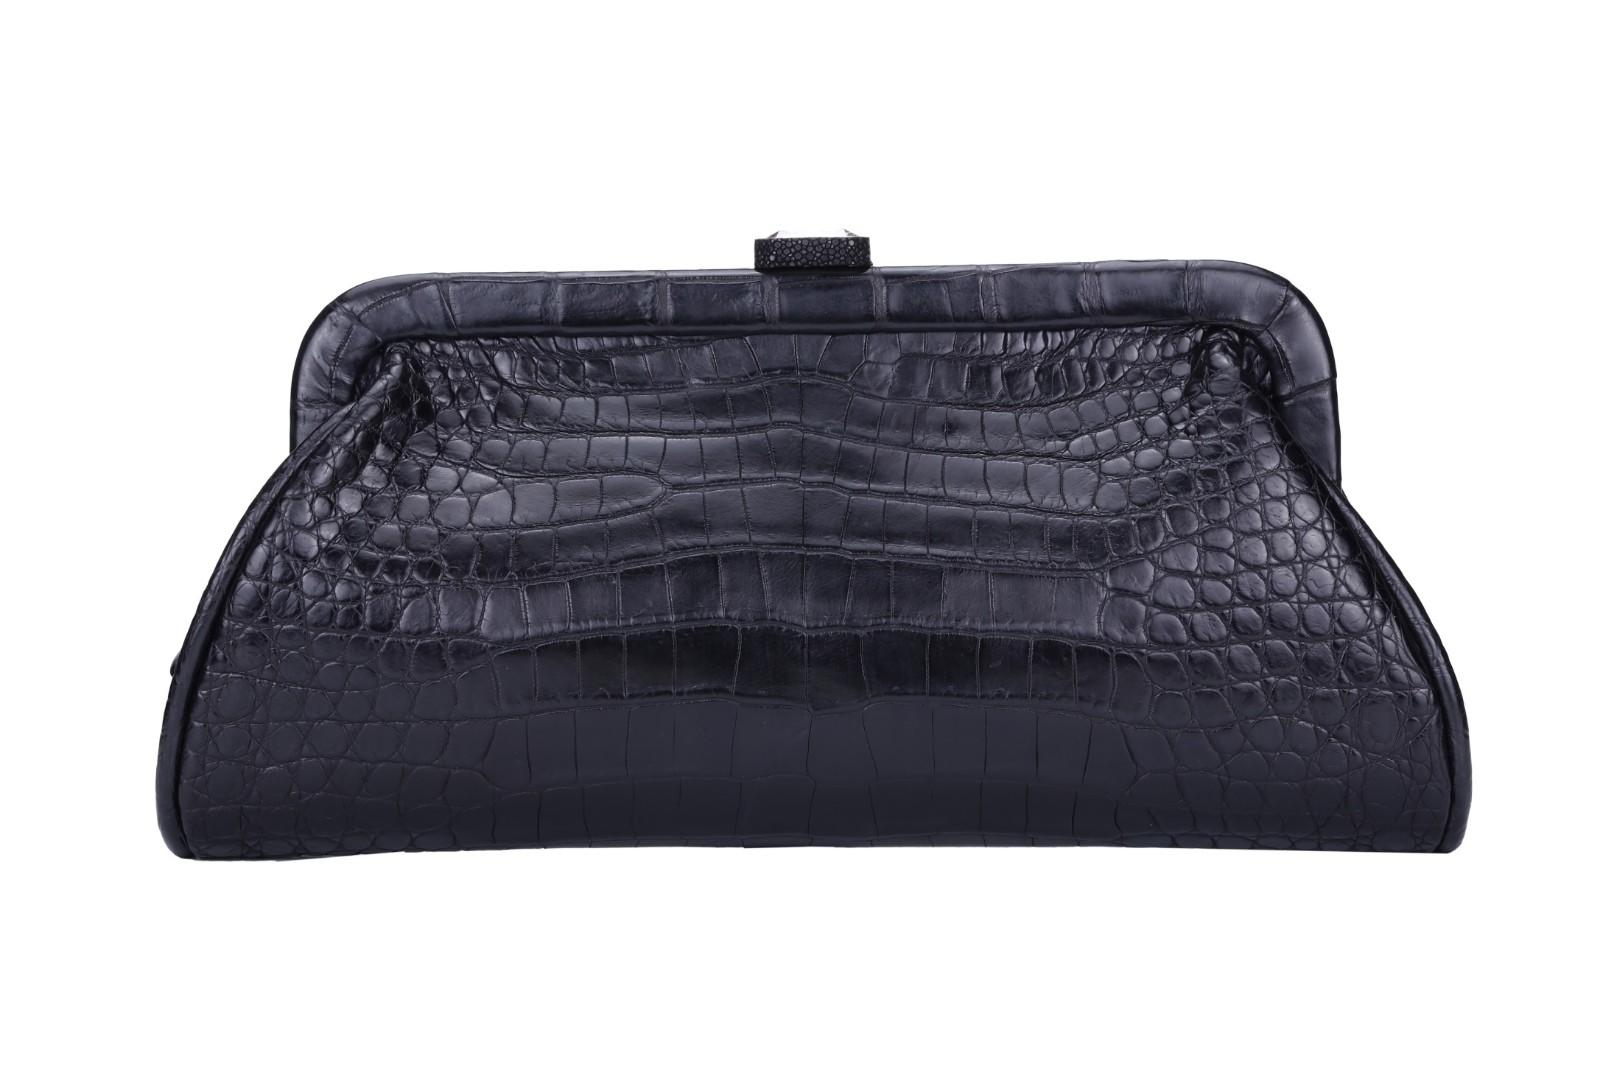 wholesale clutch bags online order now cash storage GF bags